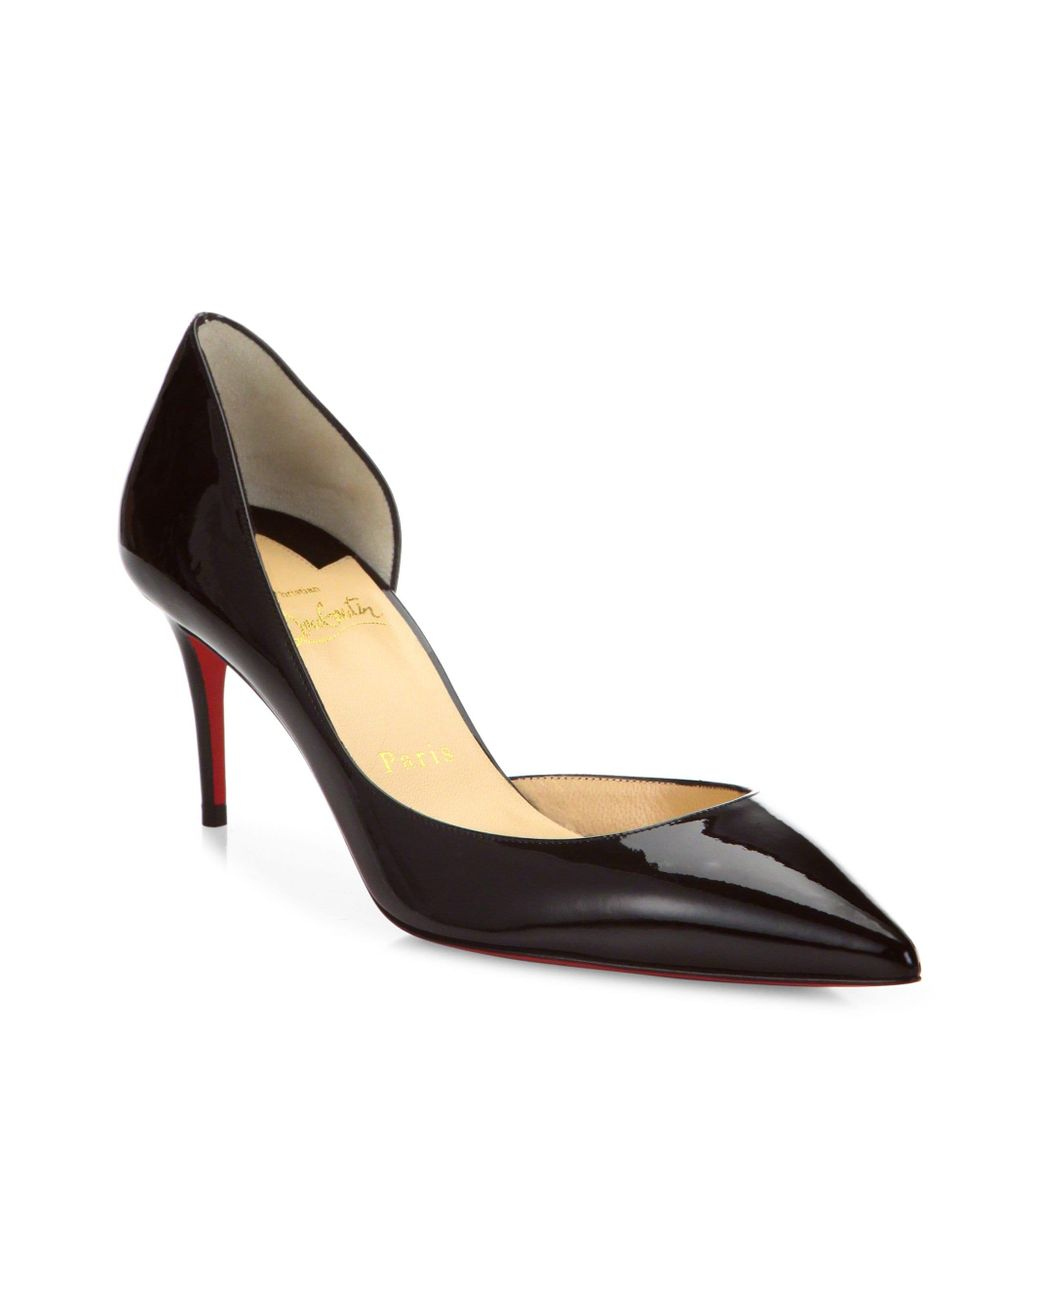 75ce08a8fe Christian Louboutin. Women's Iriza 70 Patent Leather D'orsay Court Shoes -  Black